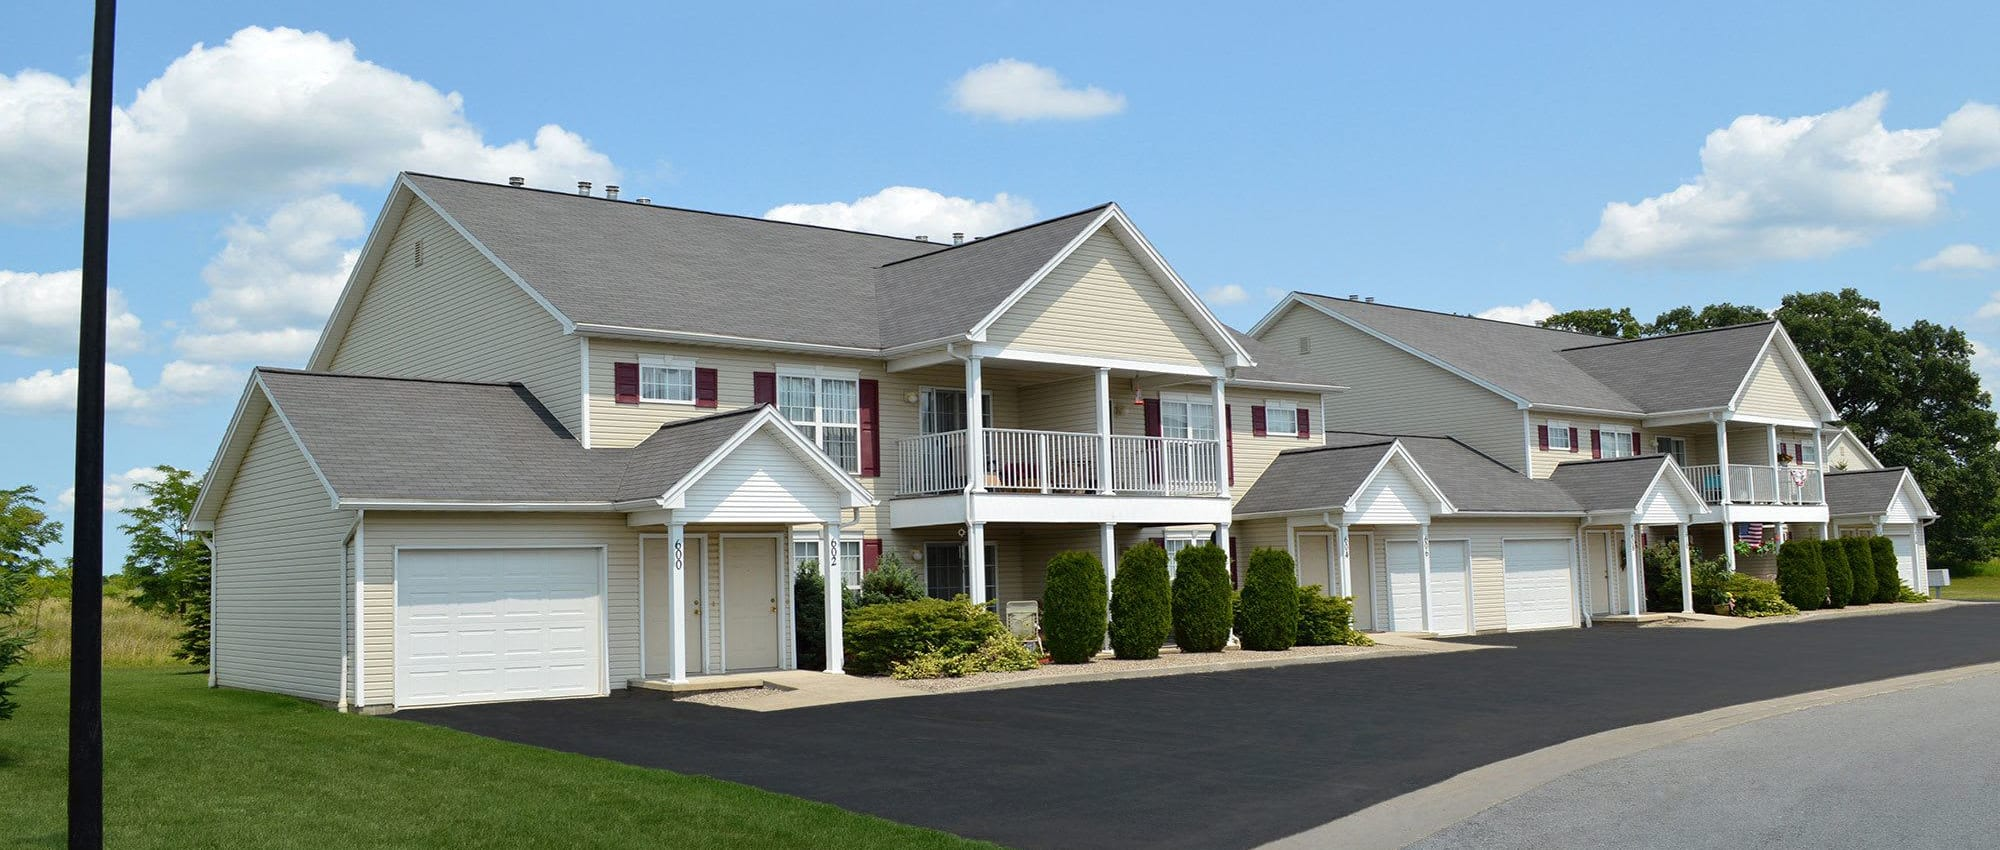 Apartments at Avon Commons in Avon, New York